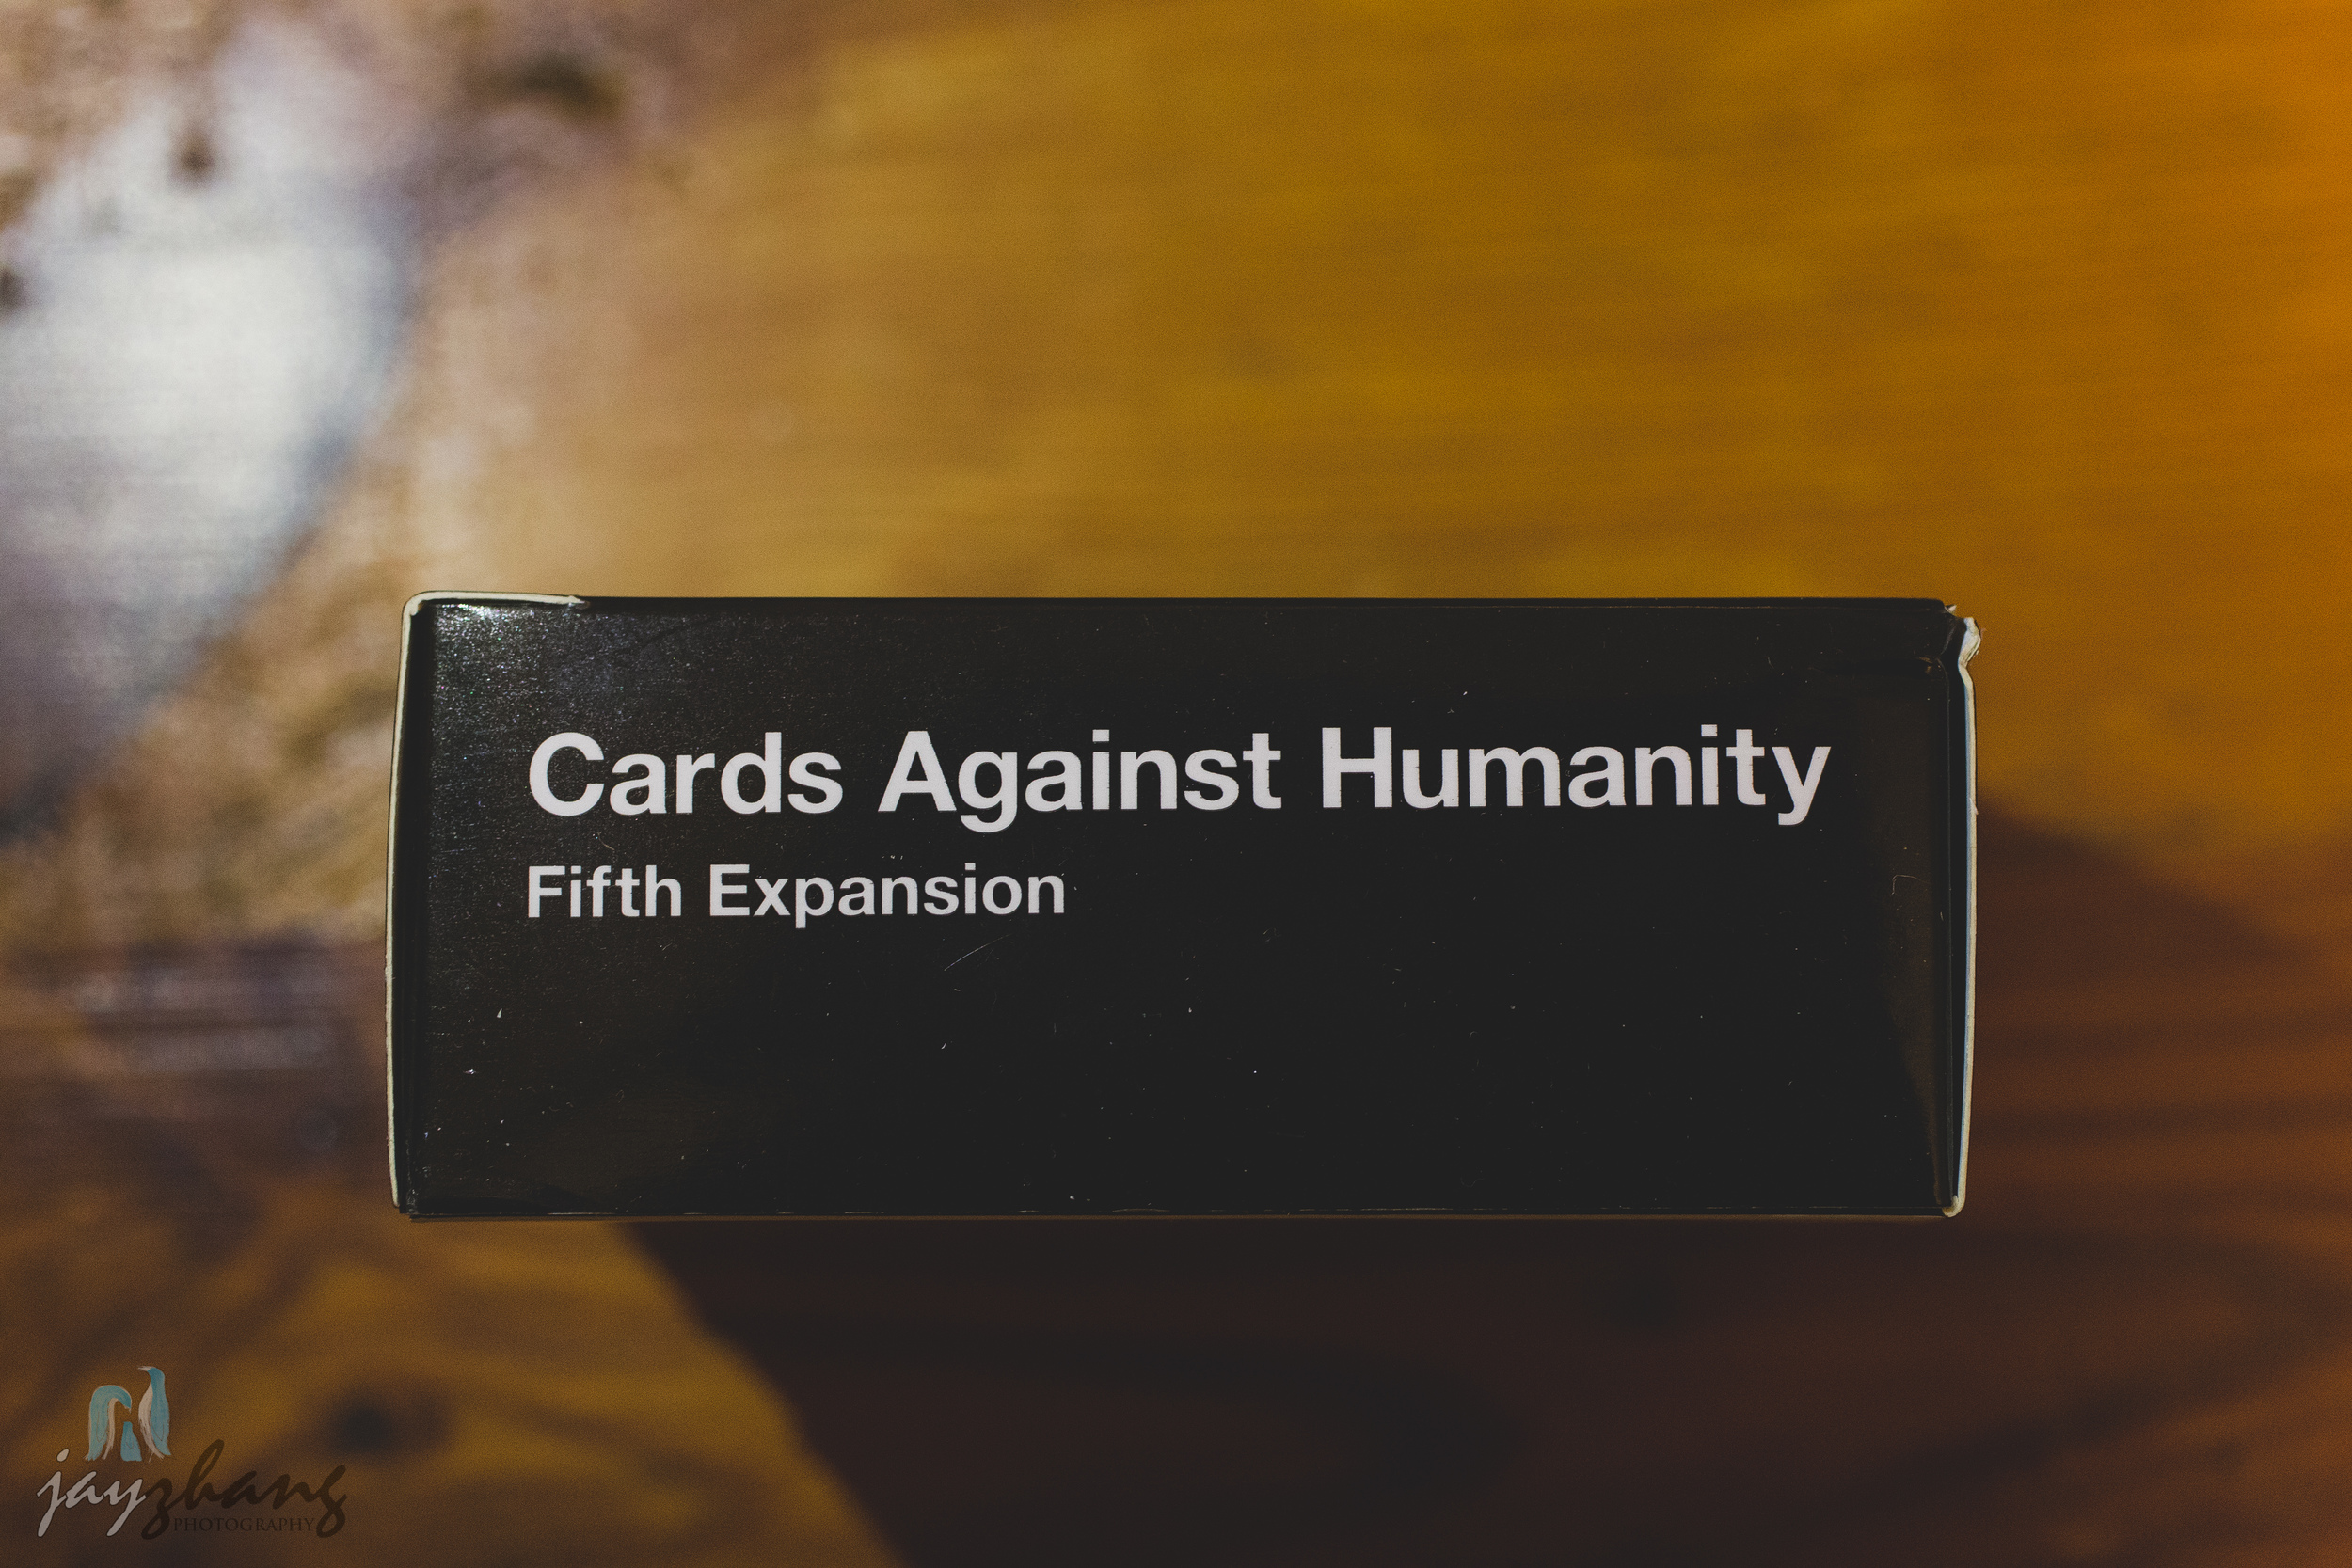 Day 226 - Cards Against Humanity